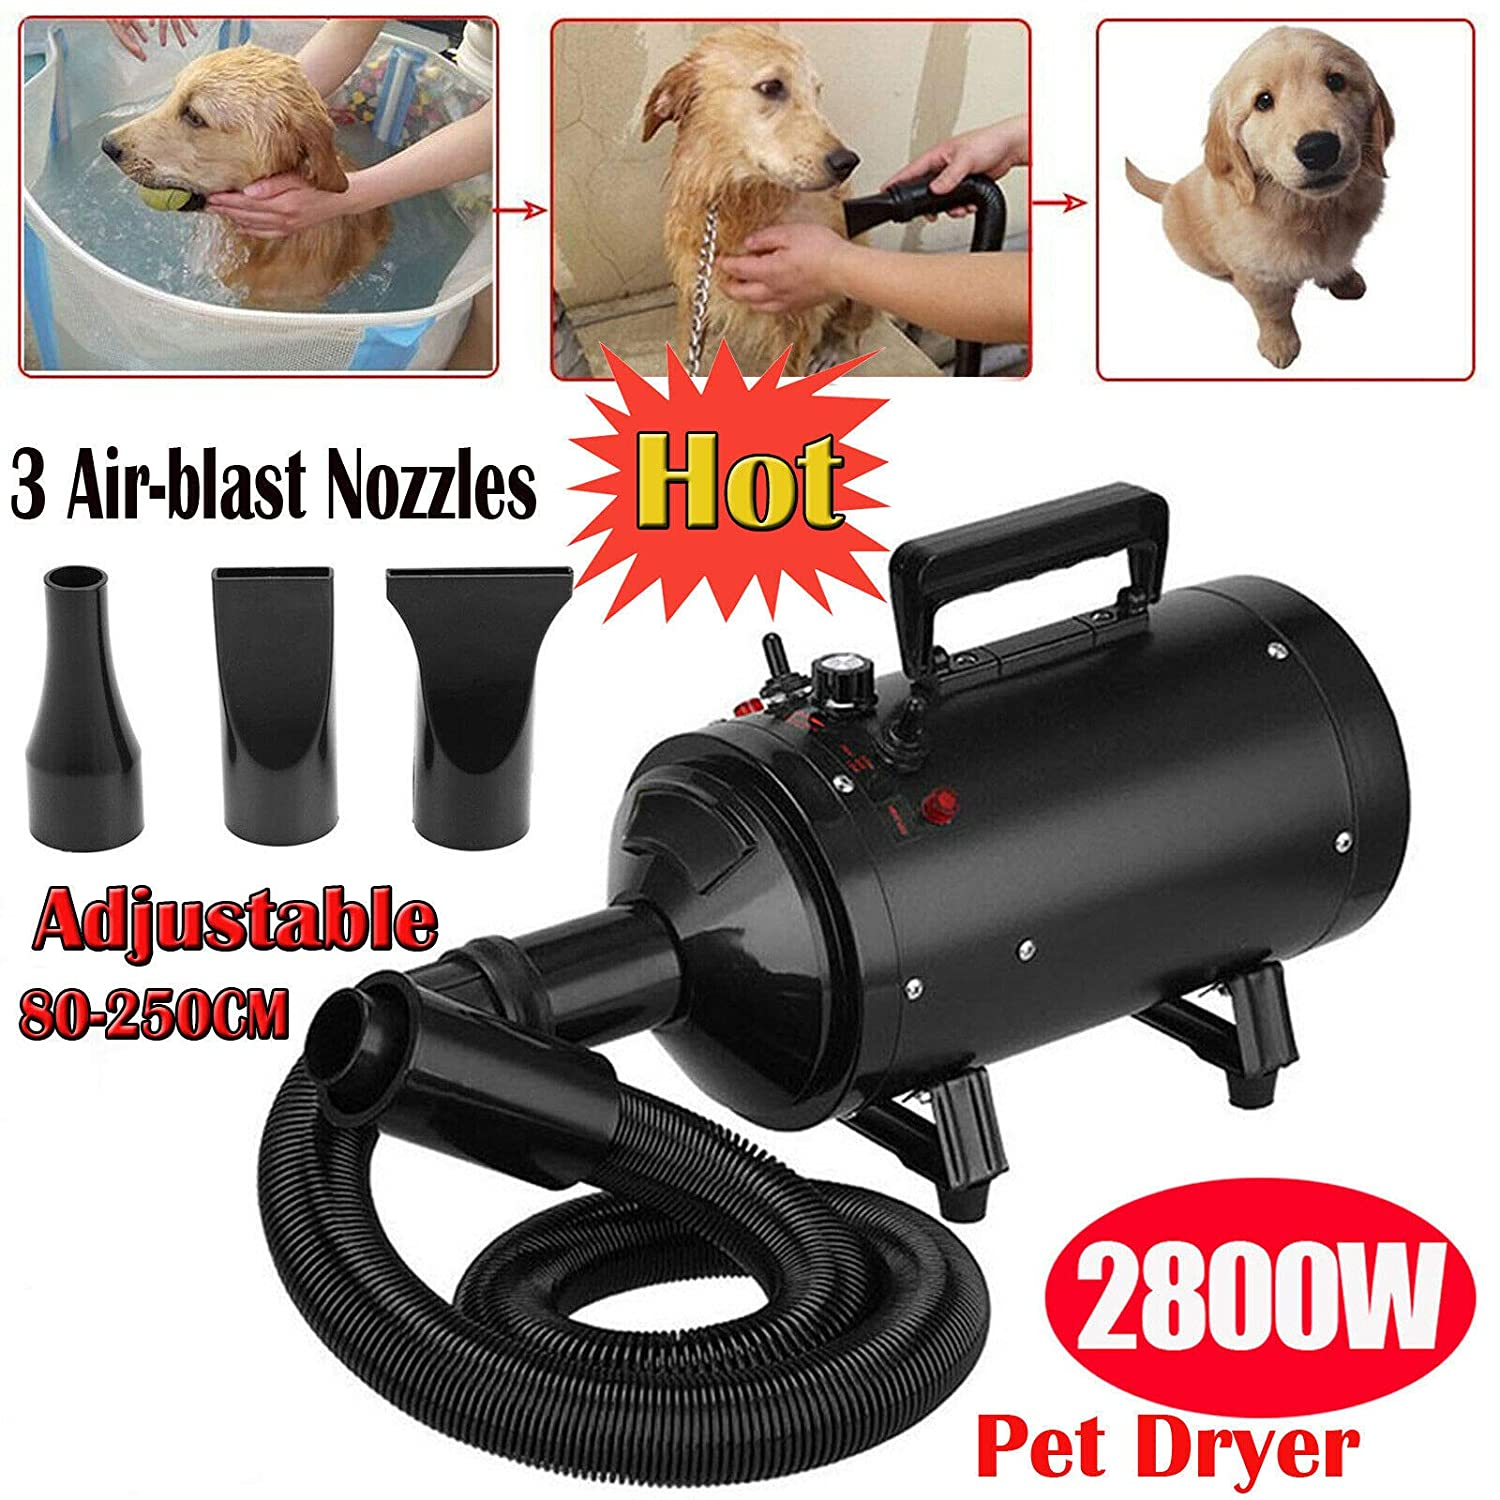 Black (stepless wind speed) 2800W Pet Grooming Hair Dryer High Velocity Dog Cat Hairdryers Low Noise Dryer Blaster Professional Powerful 2.5M Flexible Hose with 3 Nozzles Stepless Wind Speed Black